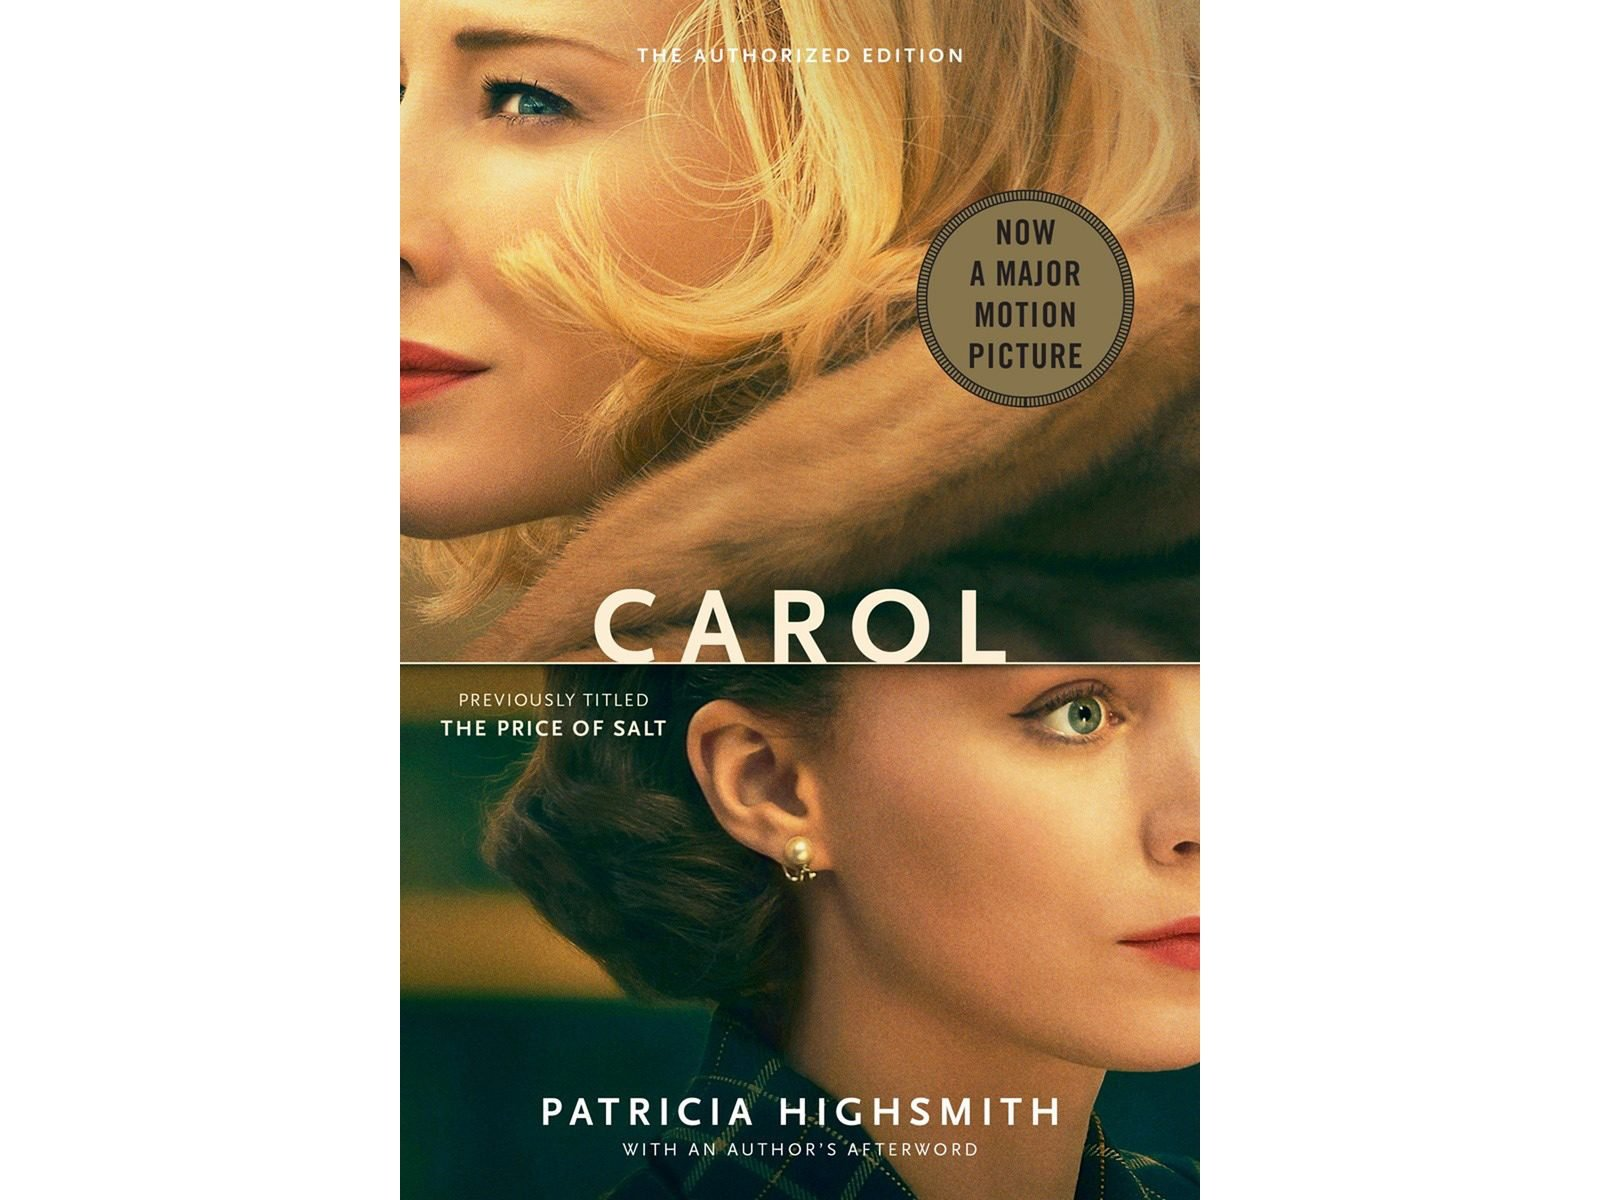 2. Carol by Patricia Highsmith